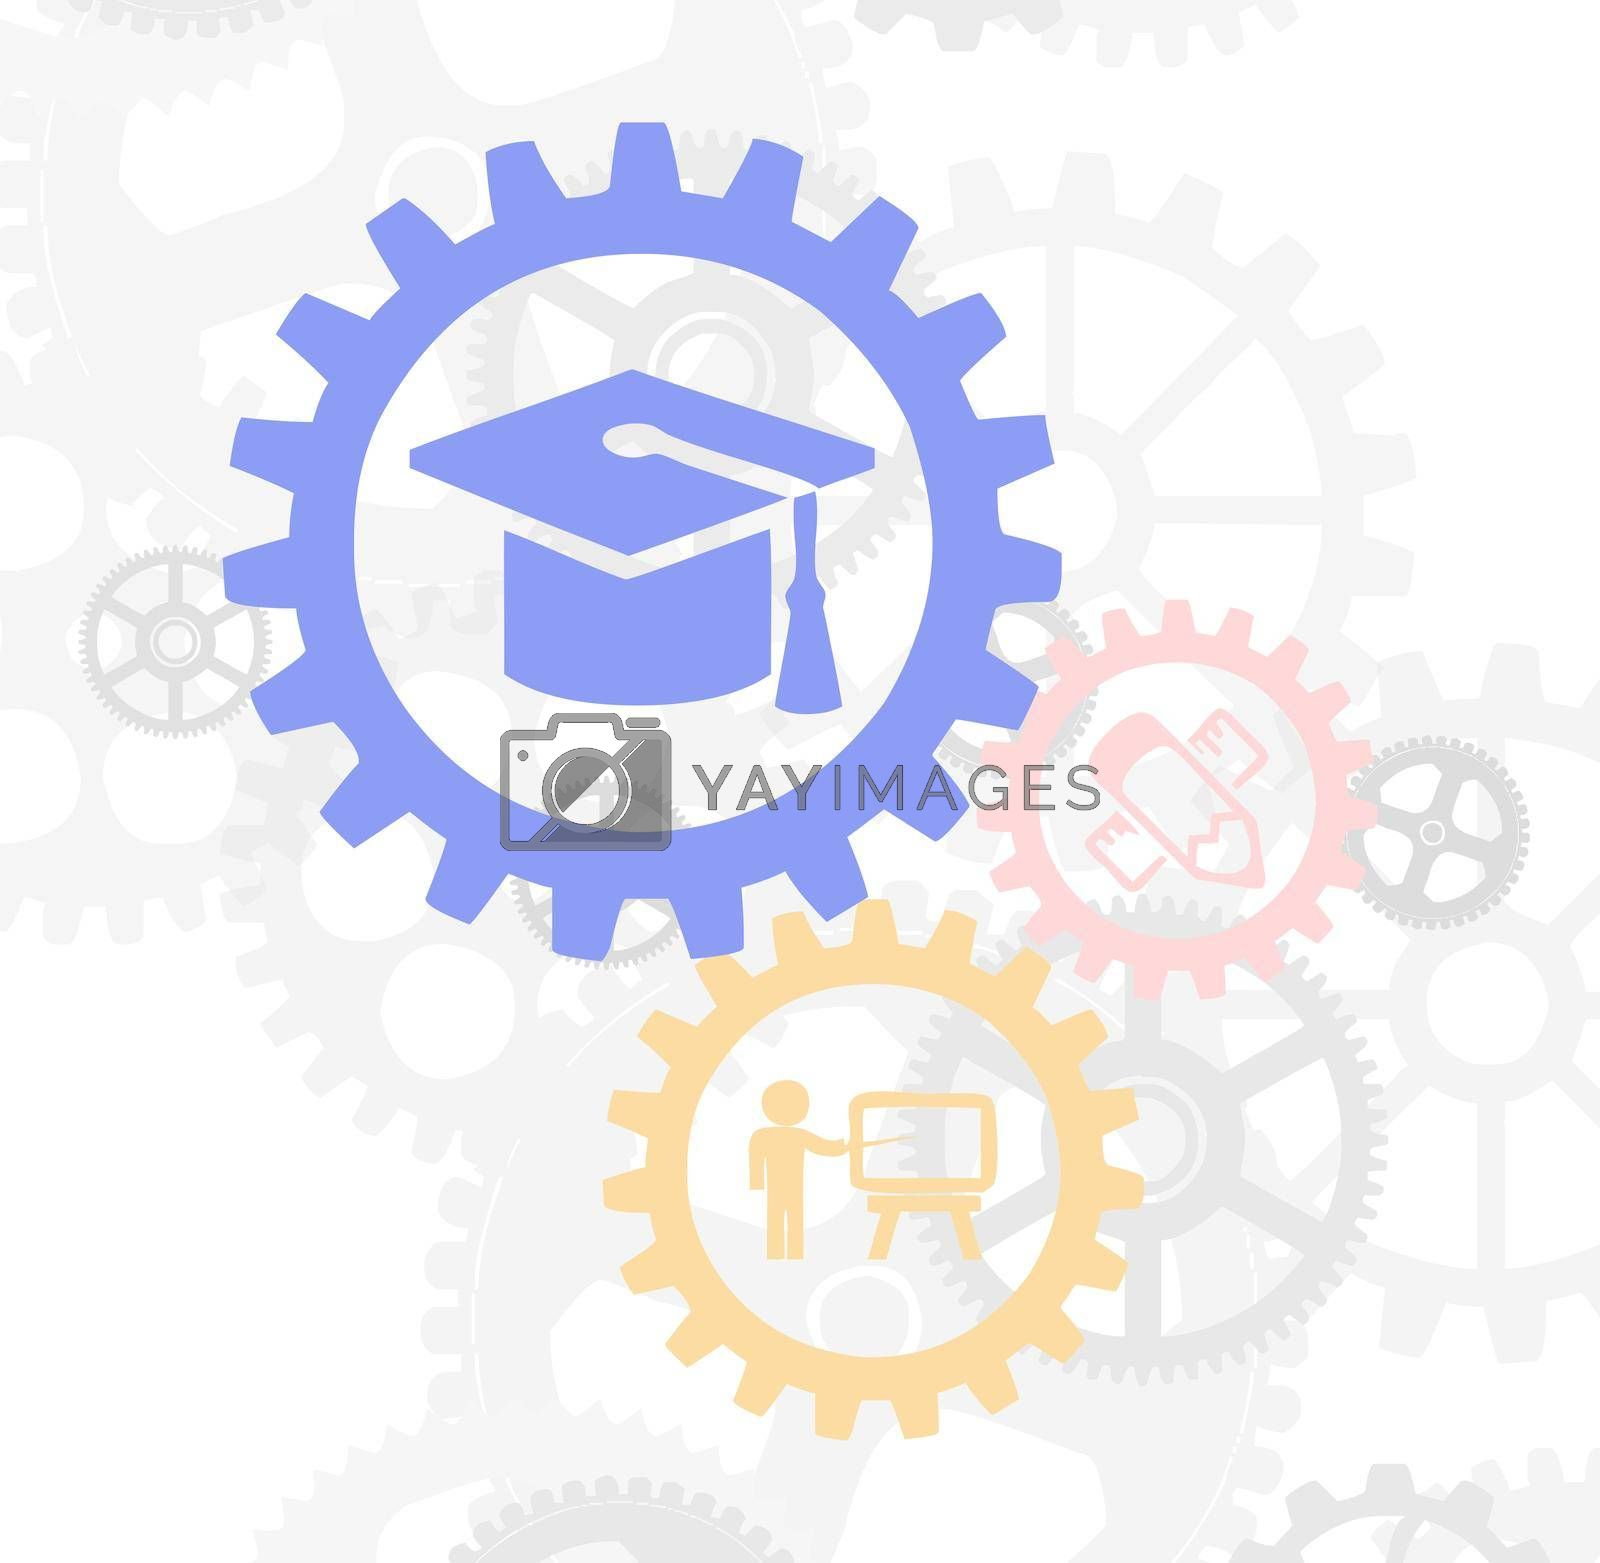 Education related image